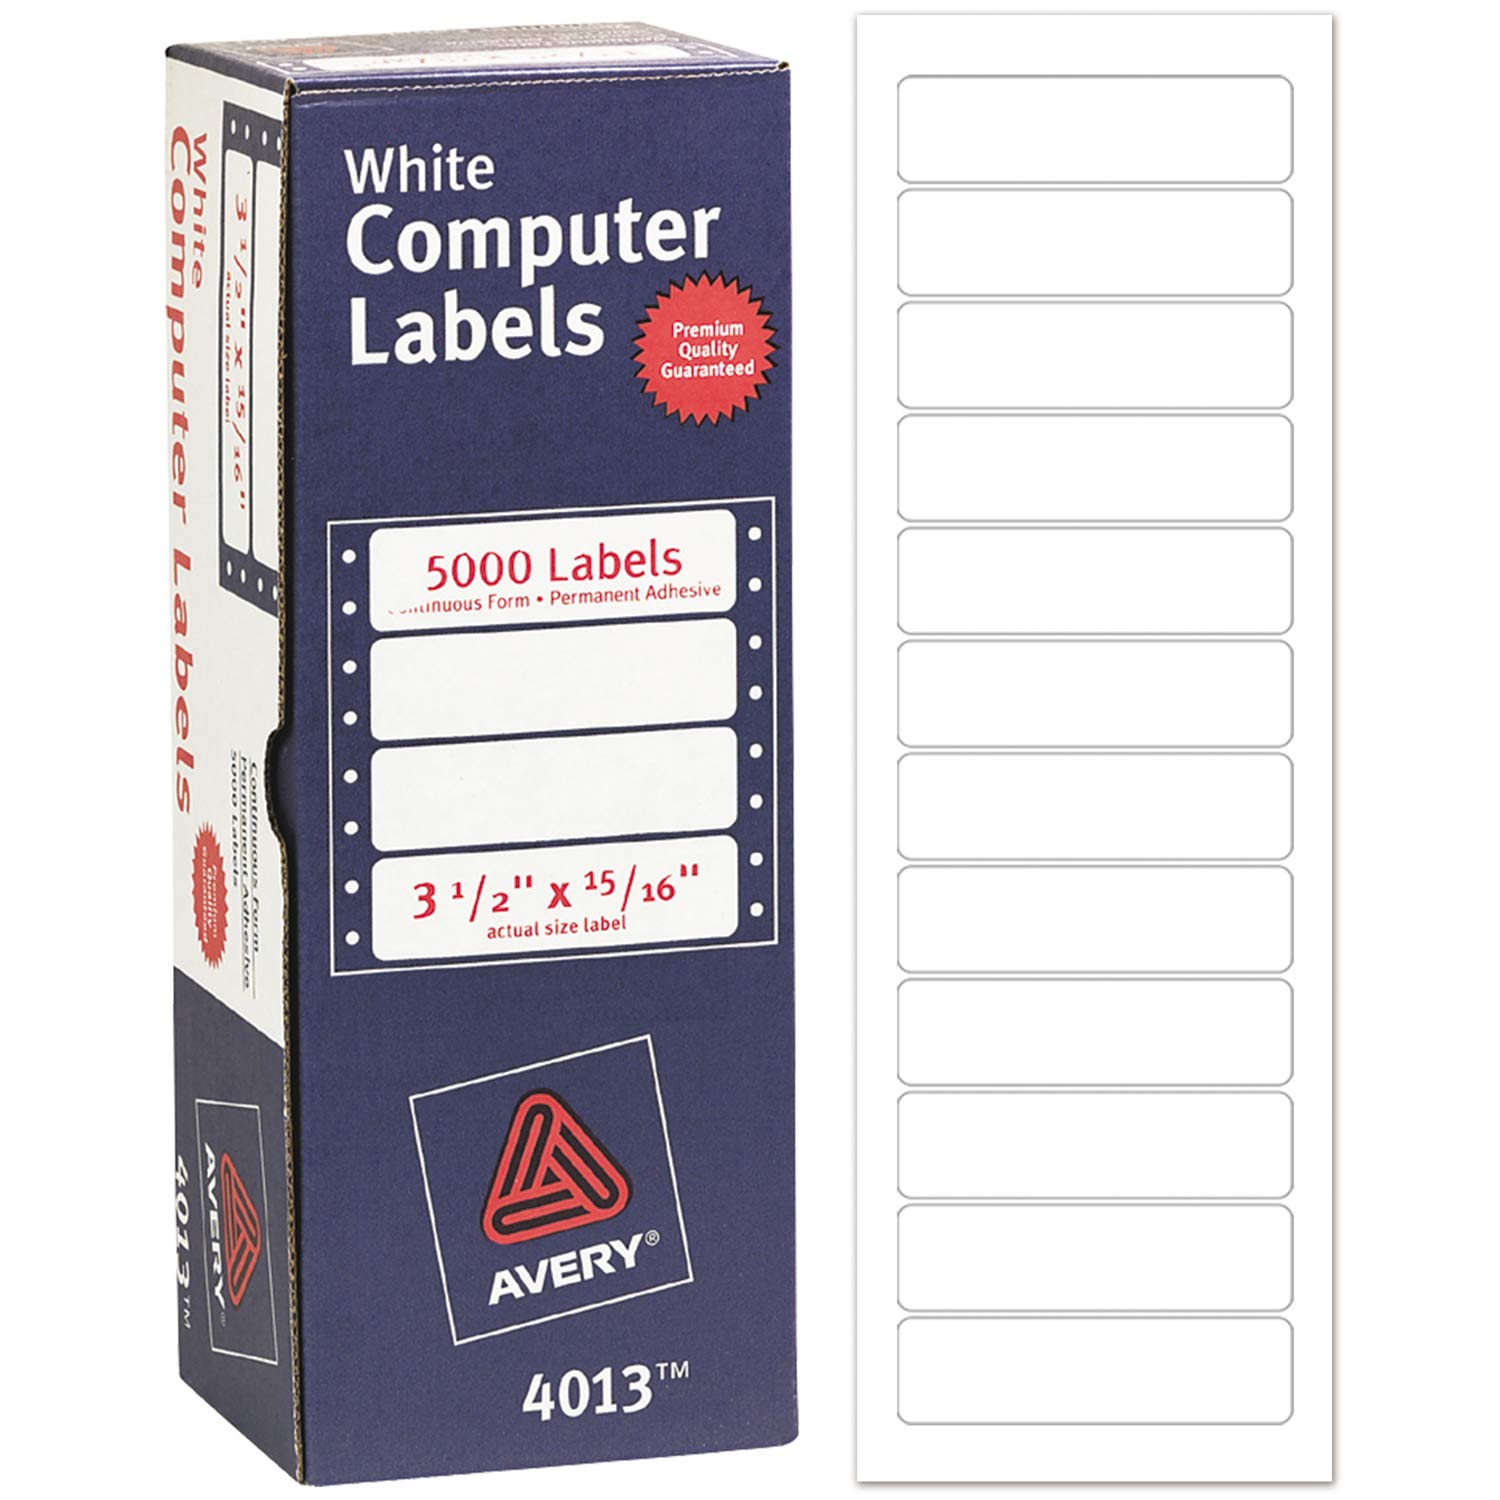 "B00006B8FU Avery Dot Matrix Printer Address Labels, 15/16"" x 3 1/2"", 5,000 White Labels (4013) 71Abd4XtljL"